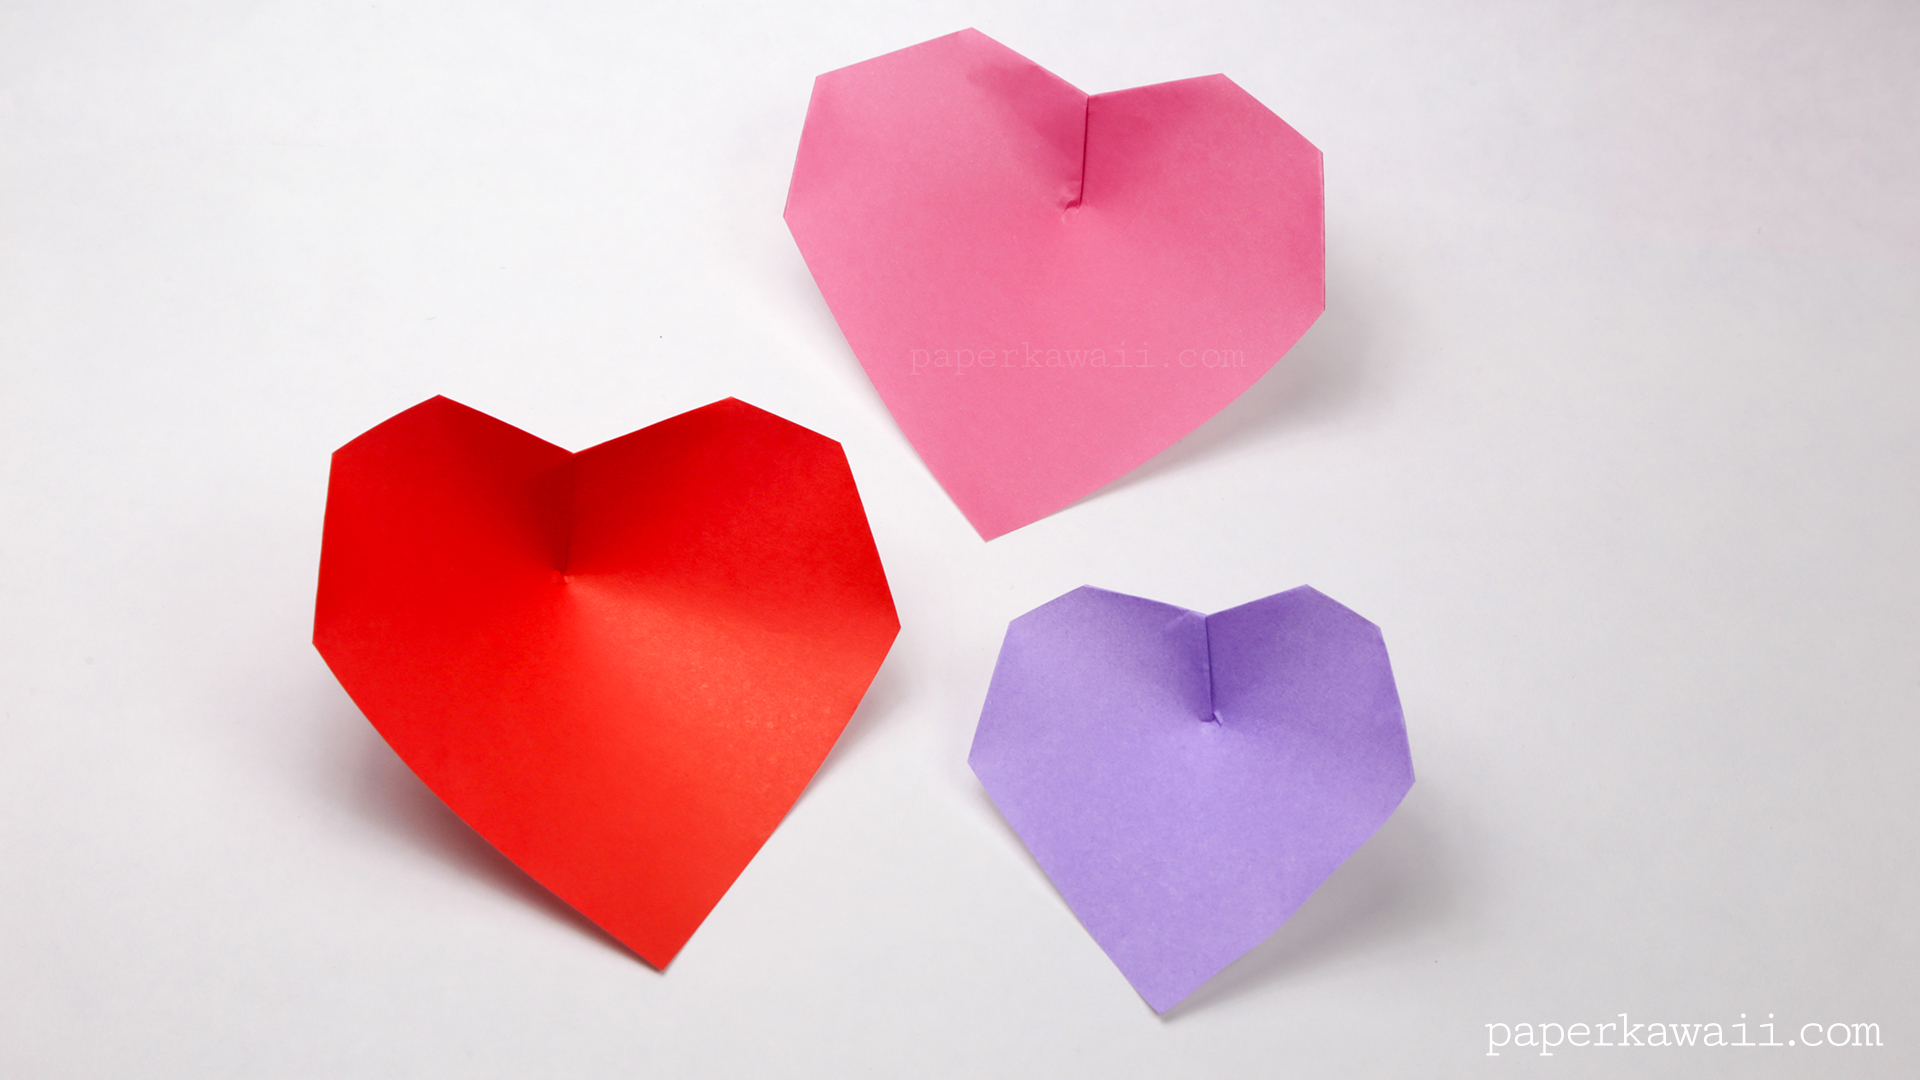 You Might Want To Use A Dab Of Glue But Not Necessary Super Easy Origami Heart Instructions